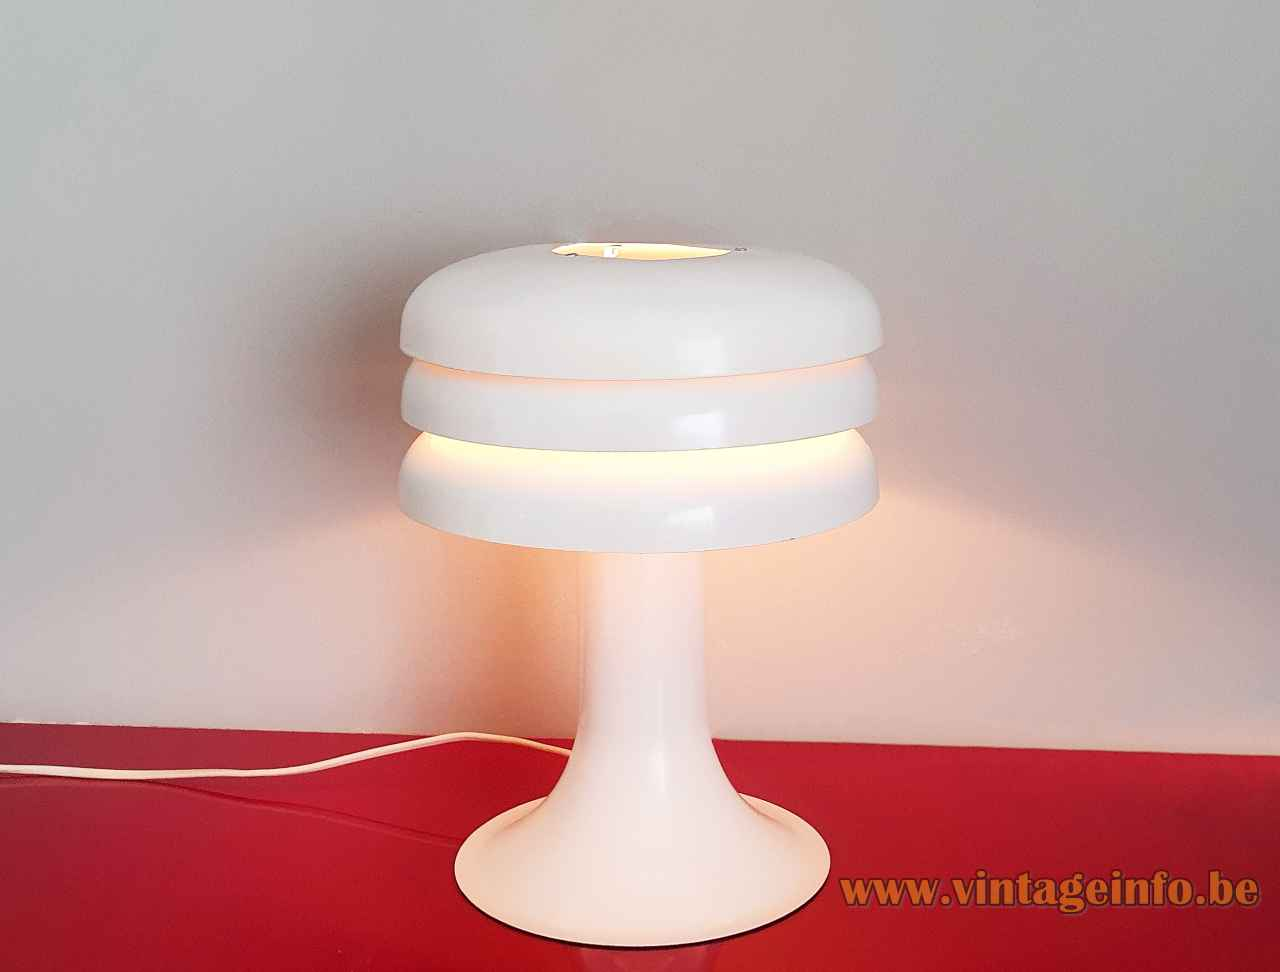 White Lamingo BN 25 table lamp design: Hans-Agne Jakobsson aluminium base 3 stacked rings lampshade 1960s